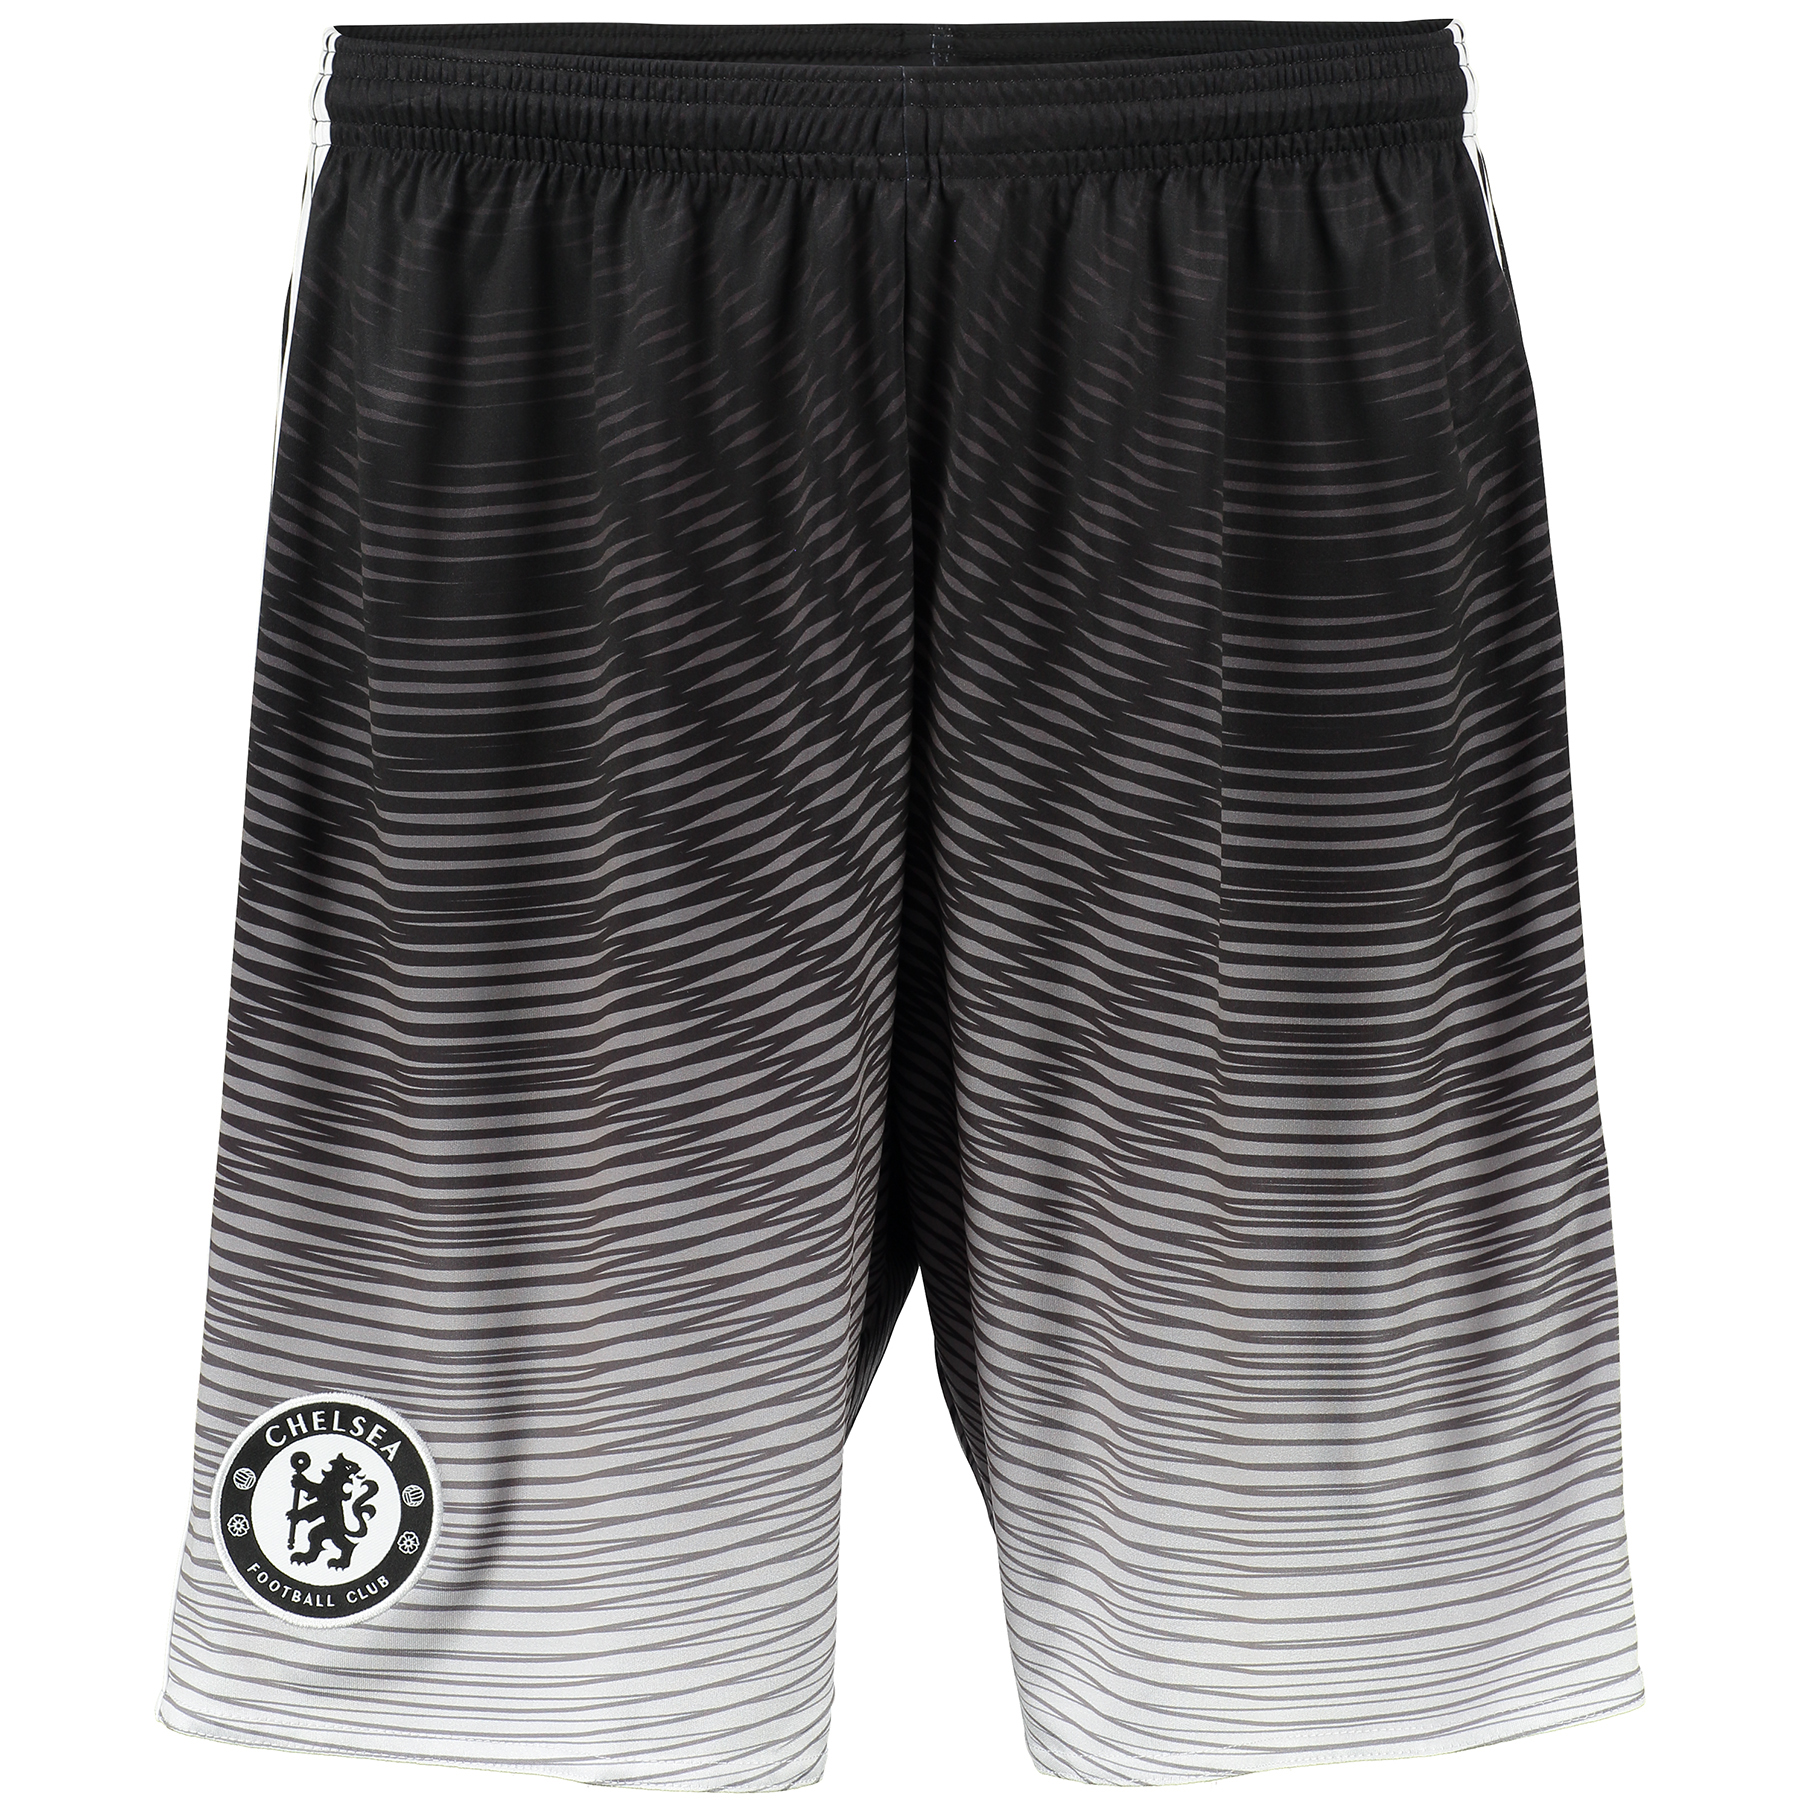 Chelsea Third Shorts 2015/16 - Kids Black   The Blues have the physicality, mentality and skill set at both ends of the pitch that make them almost impossible to bring down. These kid's football shorts are a version of the ones from their third kit.   Featuring breathable climacool® ventilation and the team badge above the hem, you can enjoy total comfort and pride when you wear these Chelsea Third Shorts.   Benefits: 18.5 cm inseam (size 50) Climalite® fabric sweeps sweat away from your skin Drawcord on elastic waist; Fingerprint-inspired embossing; Chelsea Football Club woven badge above right hem 100% recycled polyester interlock. CFC 3rd Kit The fingerprint story told through a bold and modern graphic on the shorts and mirrored with an embossing on the shirt. The fingerprint label adds value and contributes further to the story Club crest: woven badge The fingerprint represents the identity of all Chelsea fans climalite® Soft, lightweight fabric for superior moisture management Without inner mesh brief Bold fingerprint inspired graphic 100% rec.Polyester   adidas sustainable product program This product is part of the adidas sustainable product program: Products are made in more sustainable ways to make the world a better placeEvery fibre counts: Recycled polyester saves resources and decreases emissions